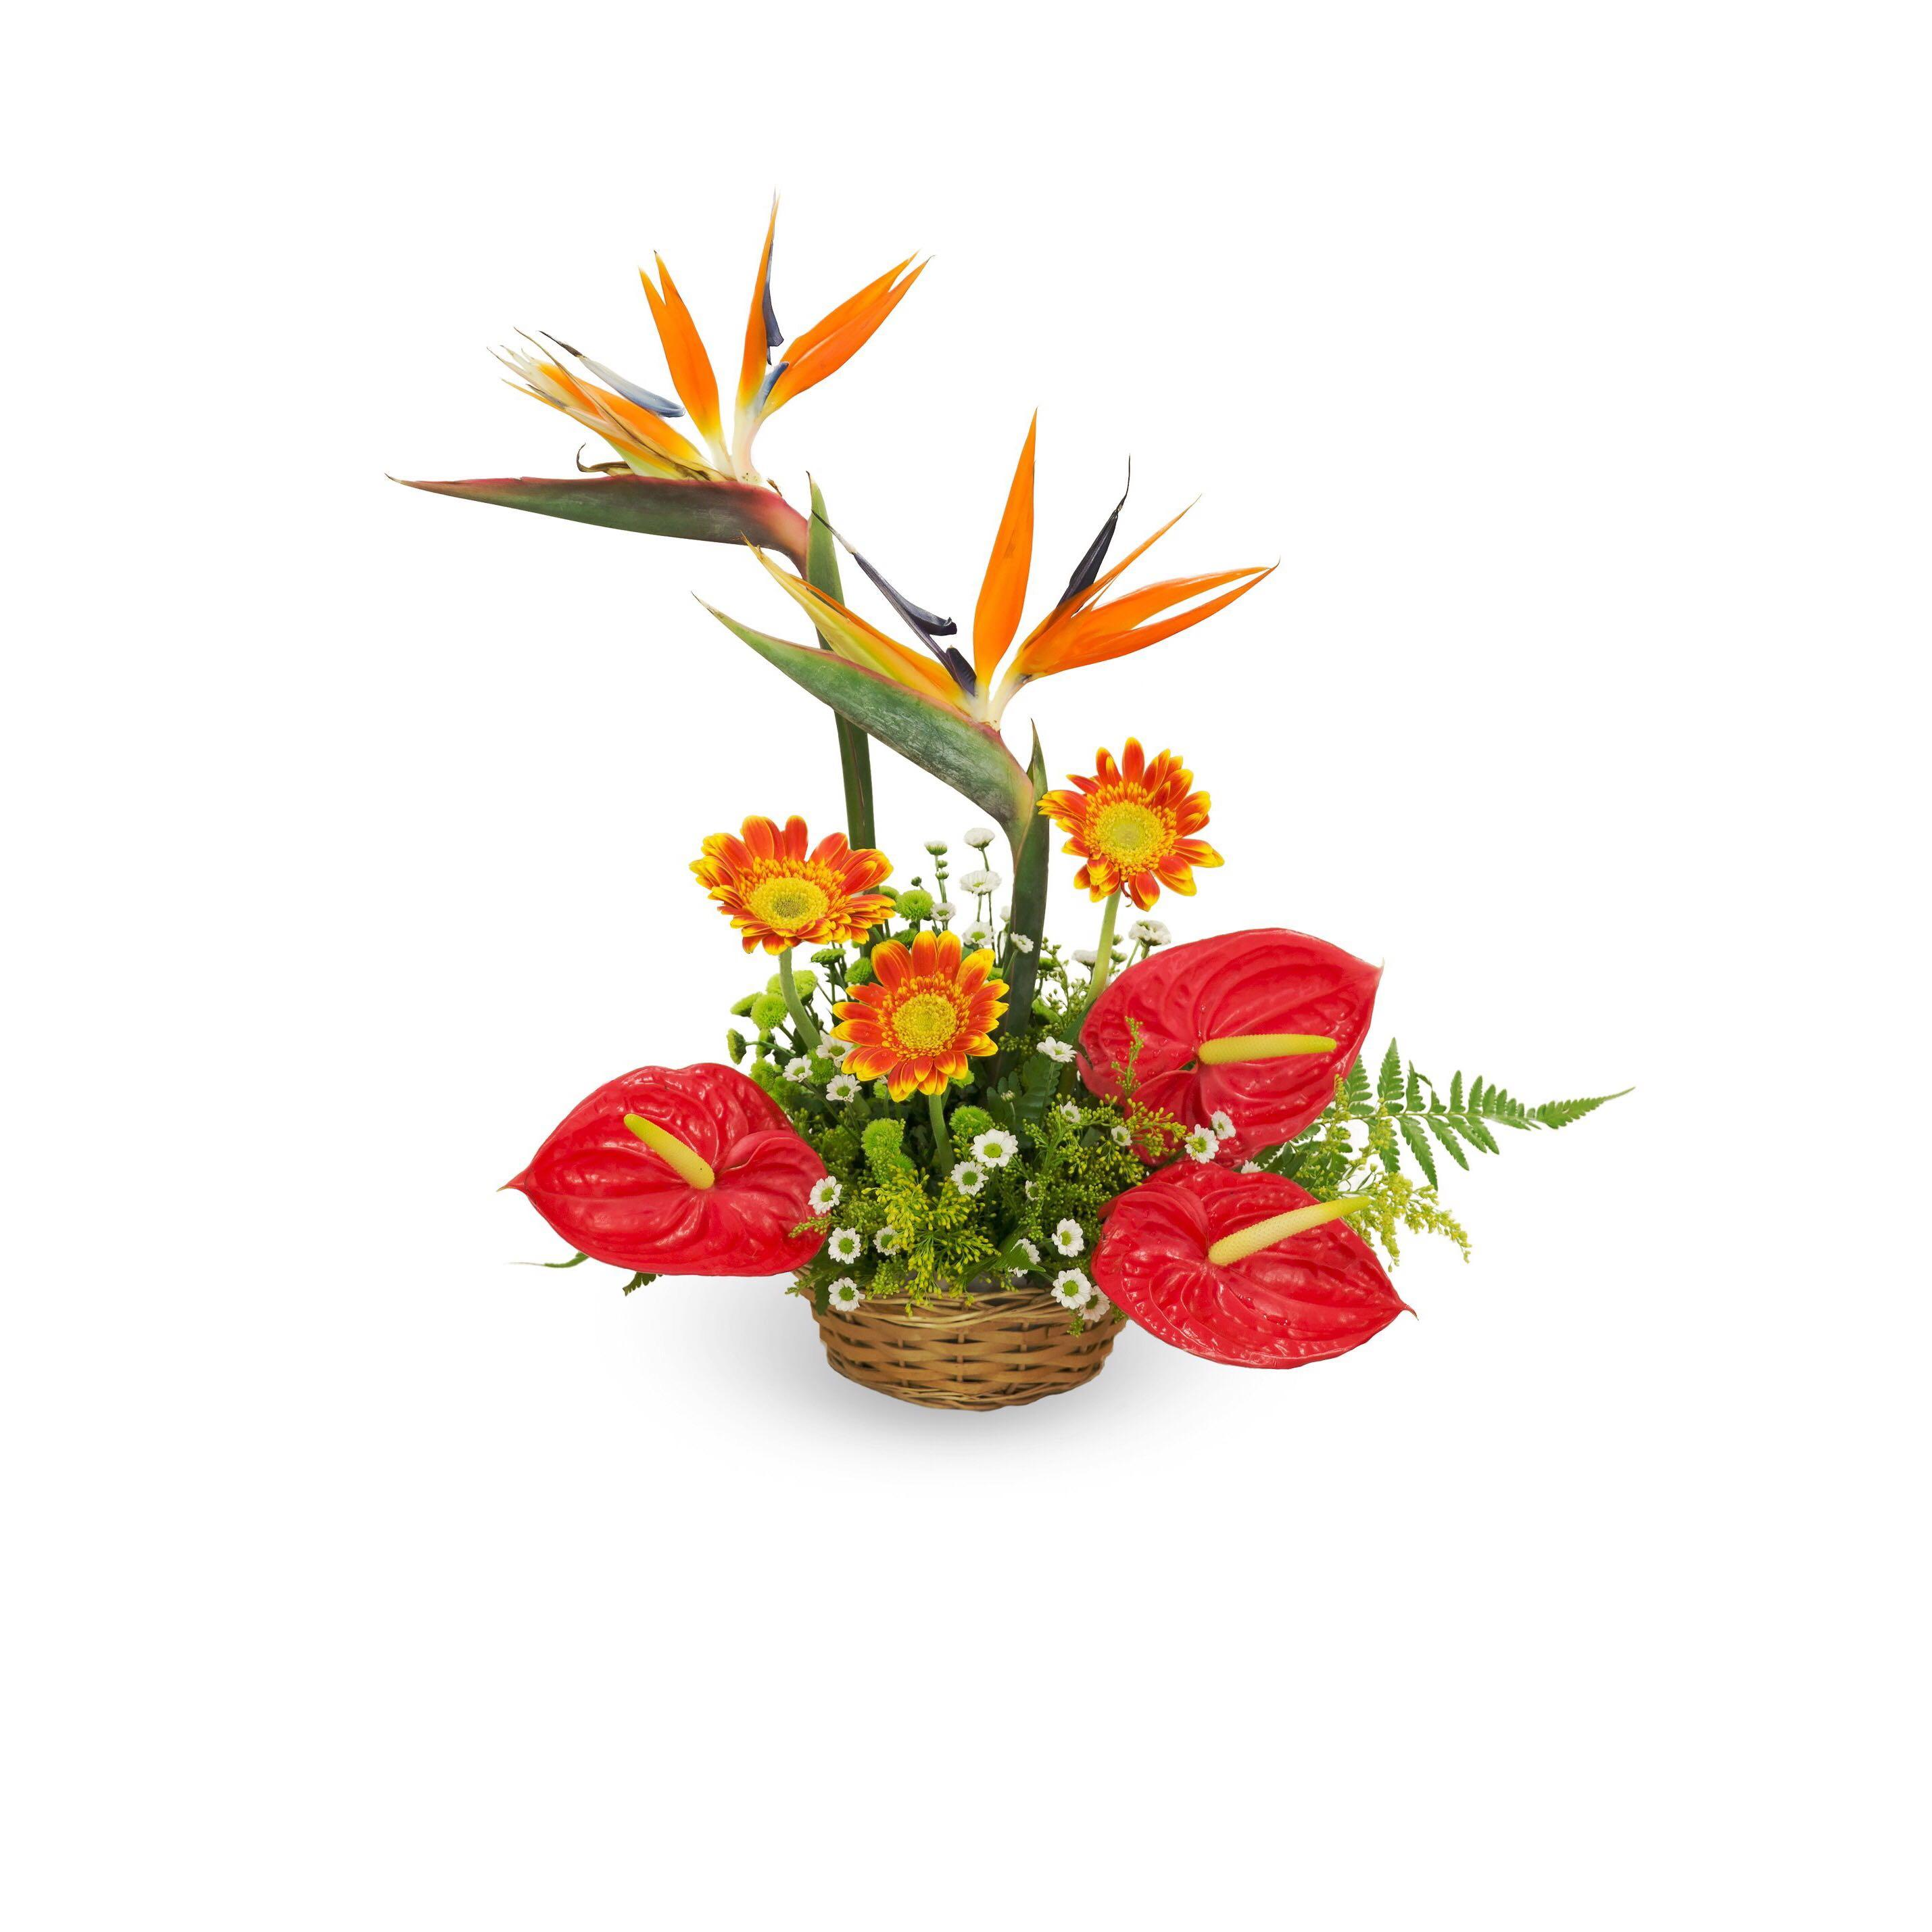 Birds Of Paradise Anthurium Table Flower Centrepiece Floral Arrangement Home Decor Office Decor Gardening Flowers Bouquets On Carousell